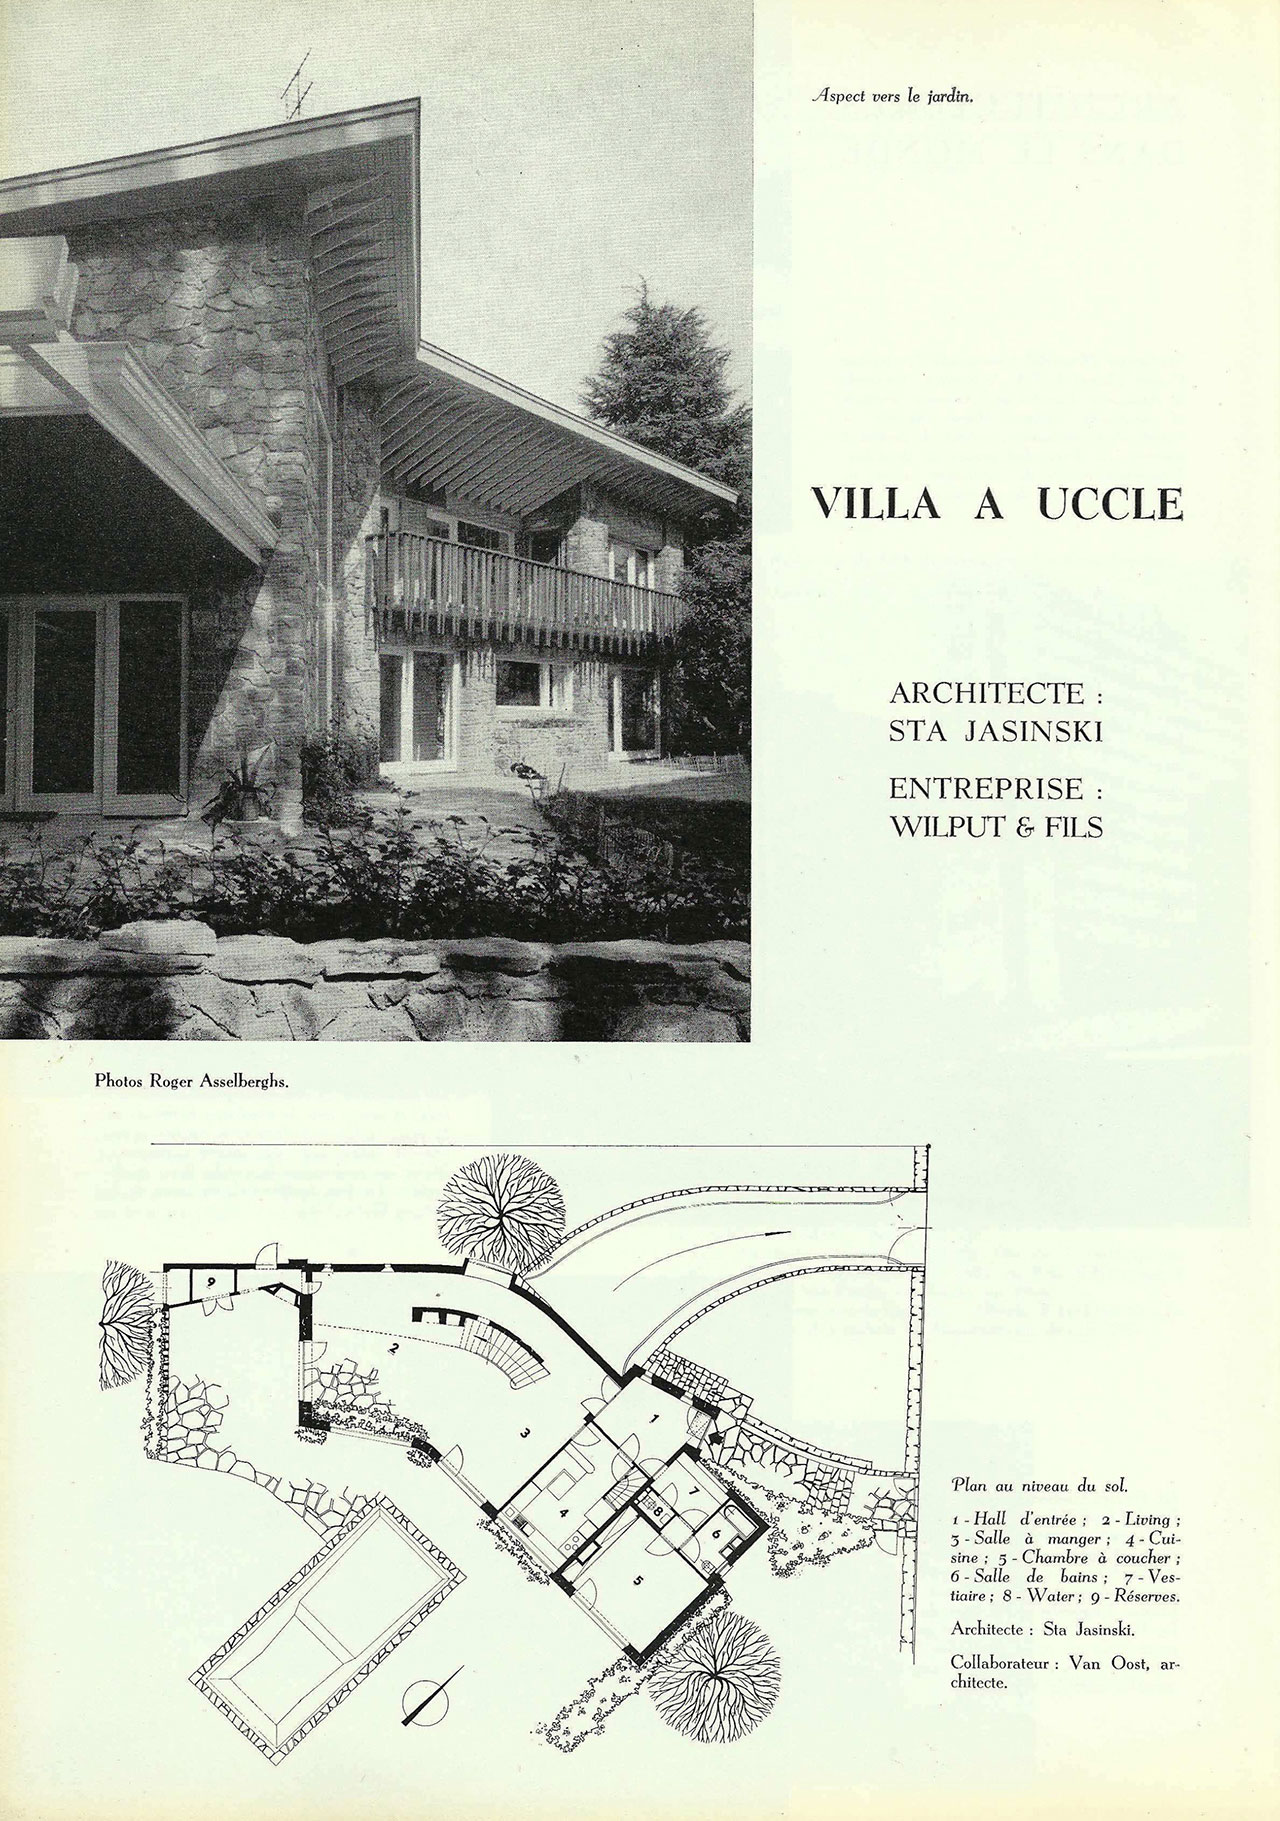 Villa à Uccle